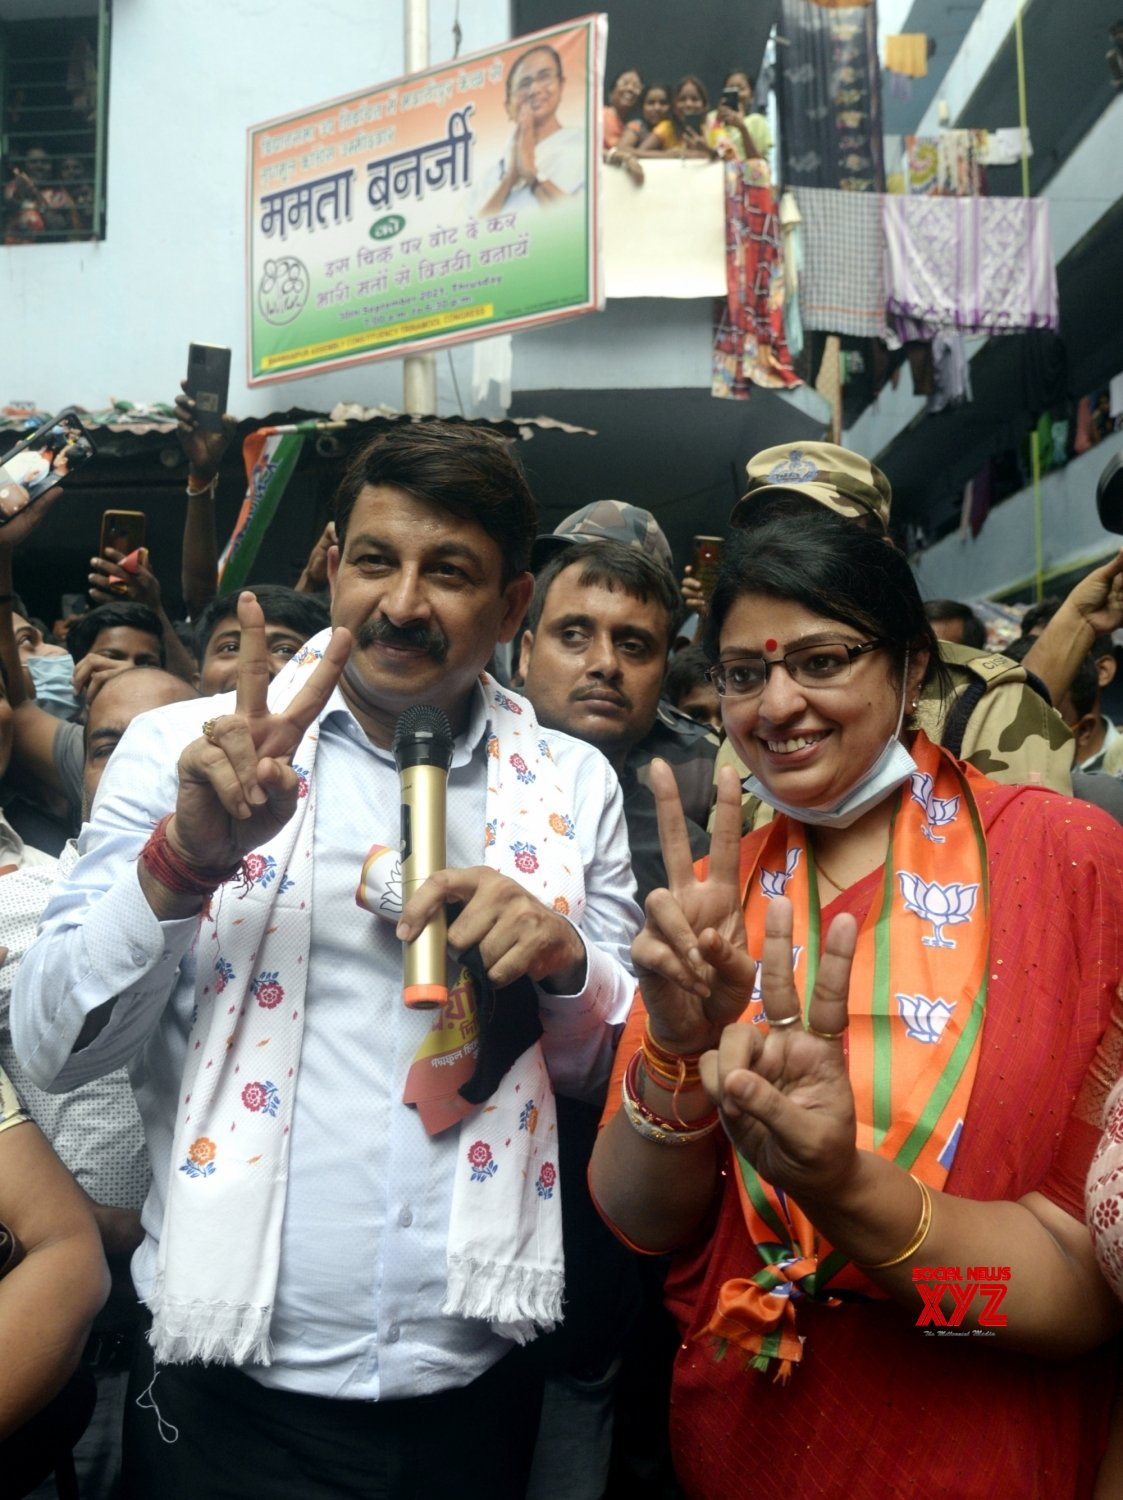 Kolkata : Bhojpuri film Actor and BJP MP Manoj Tiwari with party canidate from Bhawanipur constituency Priyanka Tibrewal during her campaign #Gallery